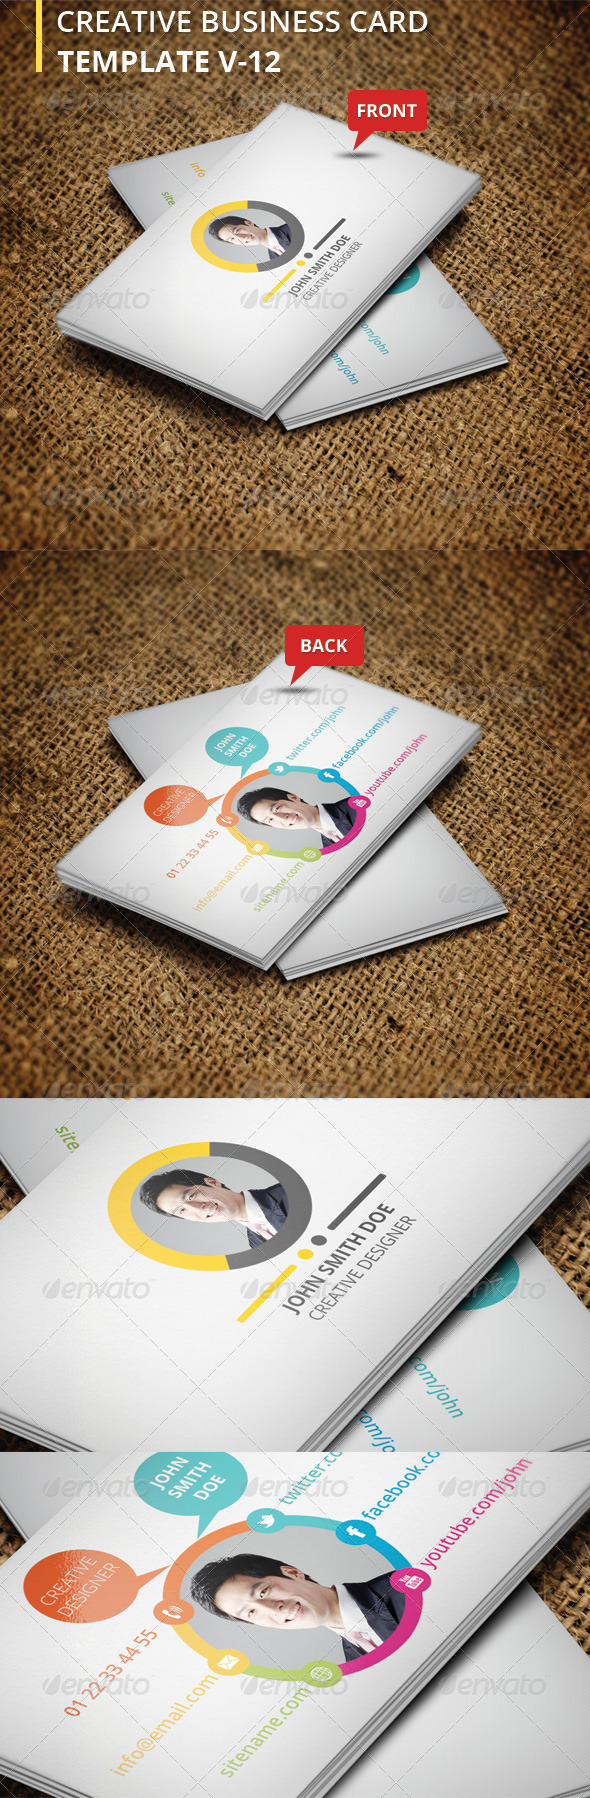 GraphicRiver Creative Business Card V-12 6145982